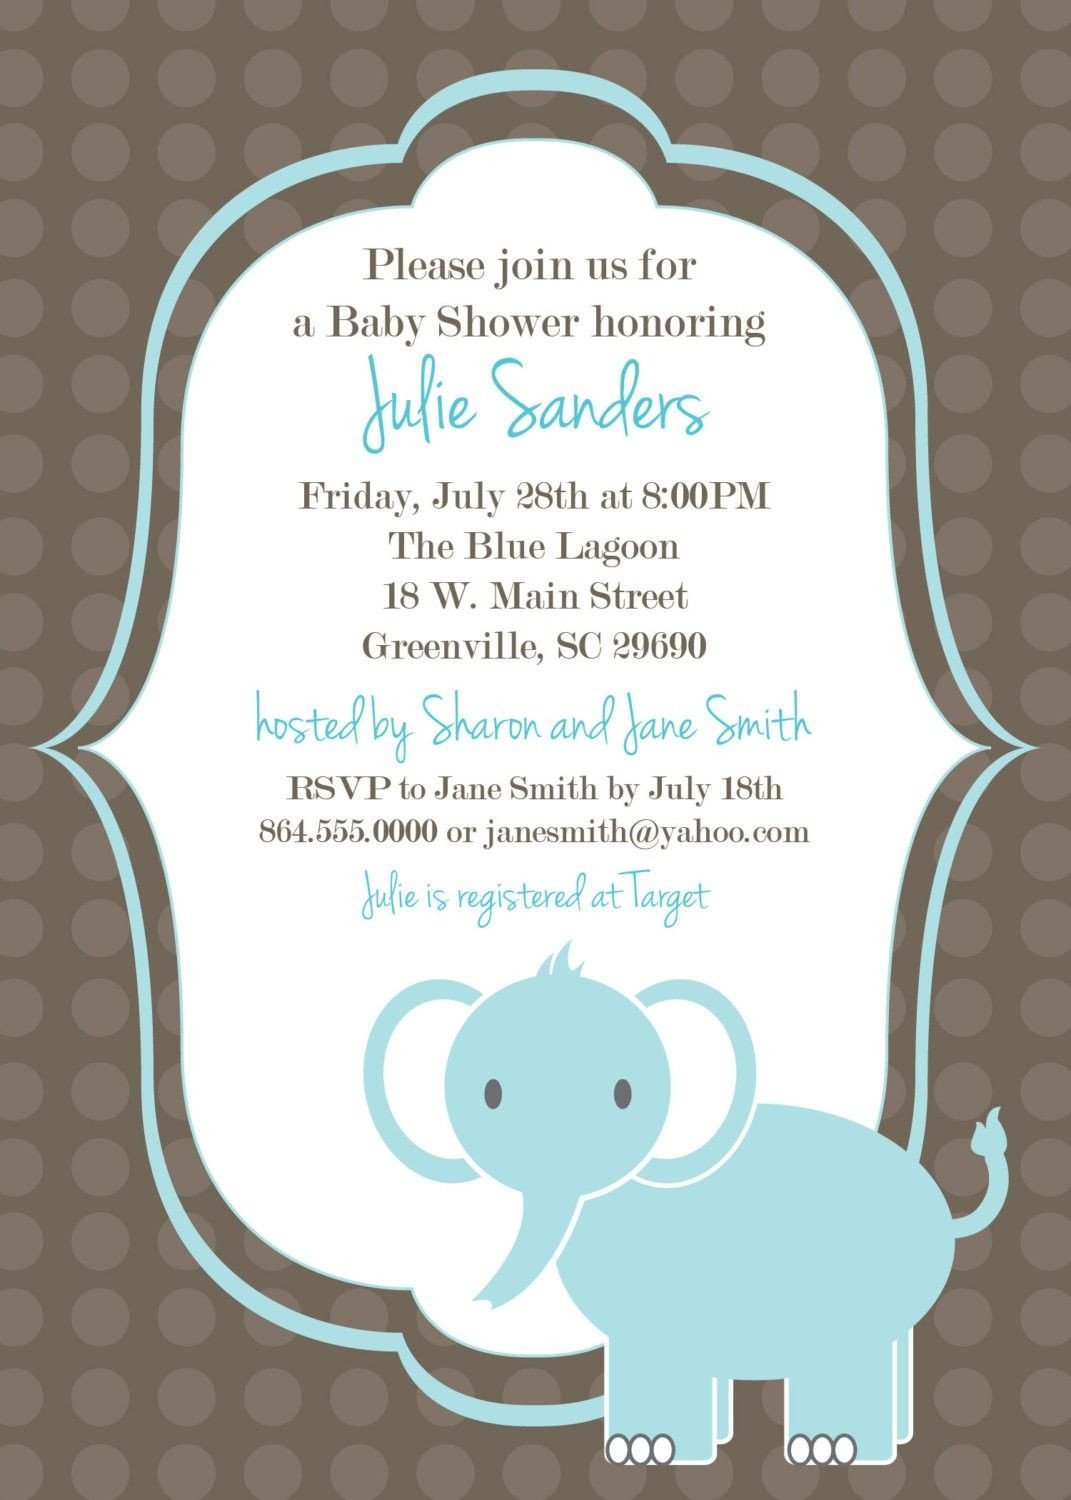 Baby Shower Invitations Templates Editable Download Free Template Got the Free Baby Shower